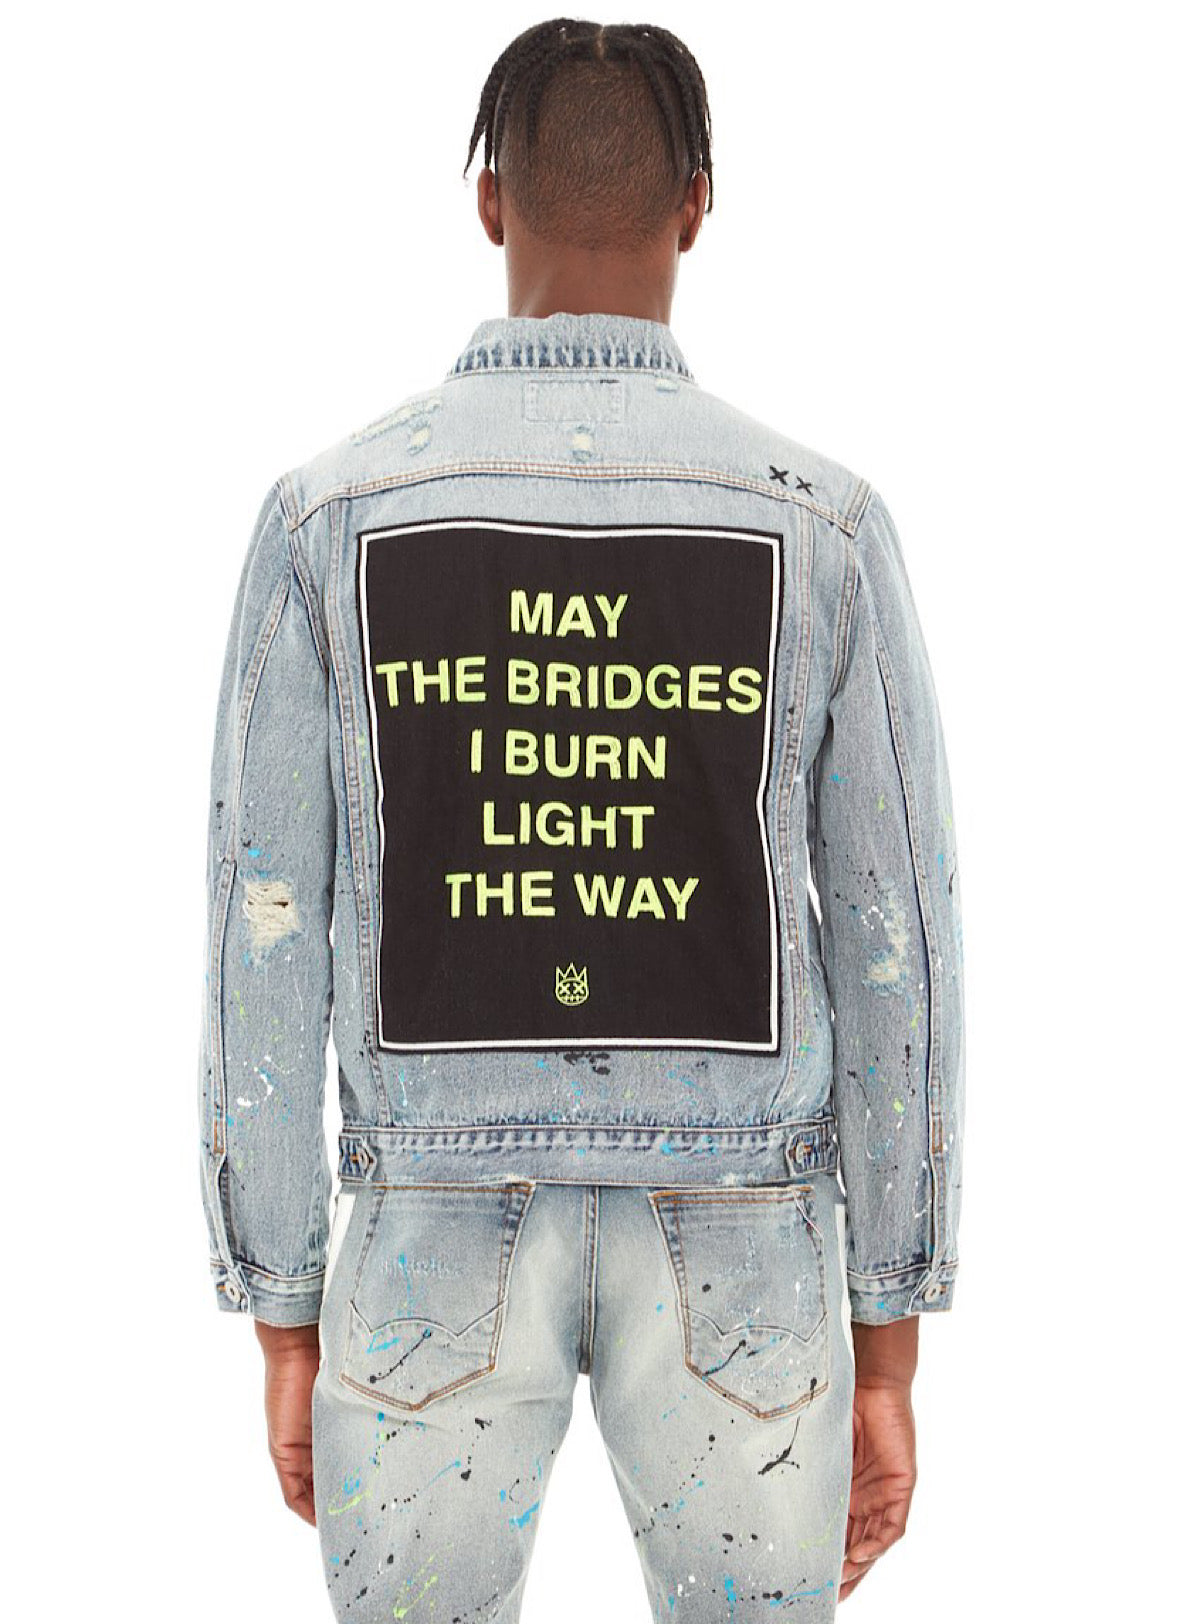 Cult of Individuality Denim Jacket - Light the Way - Neon